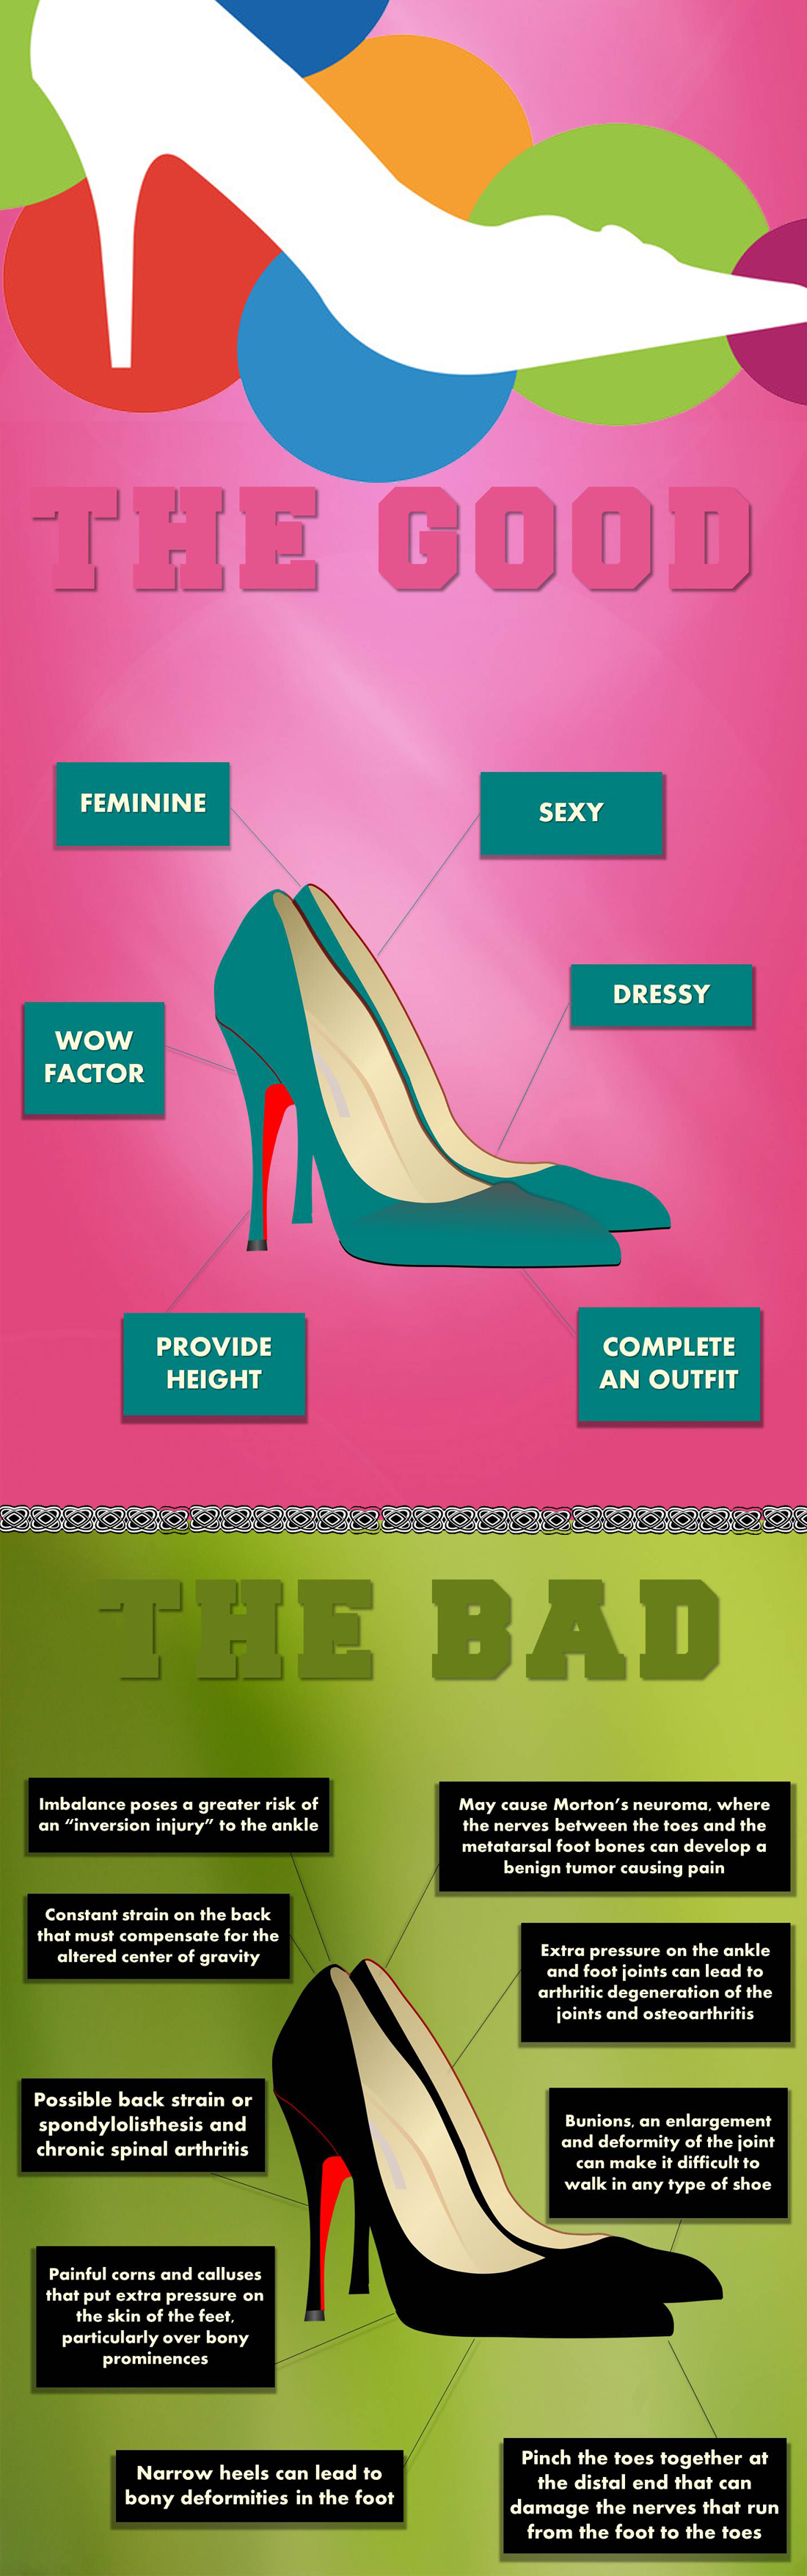 here-are-9-painful-ways-to-lose-those-sexy-feet